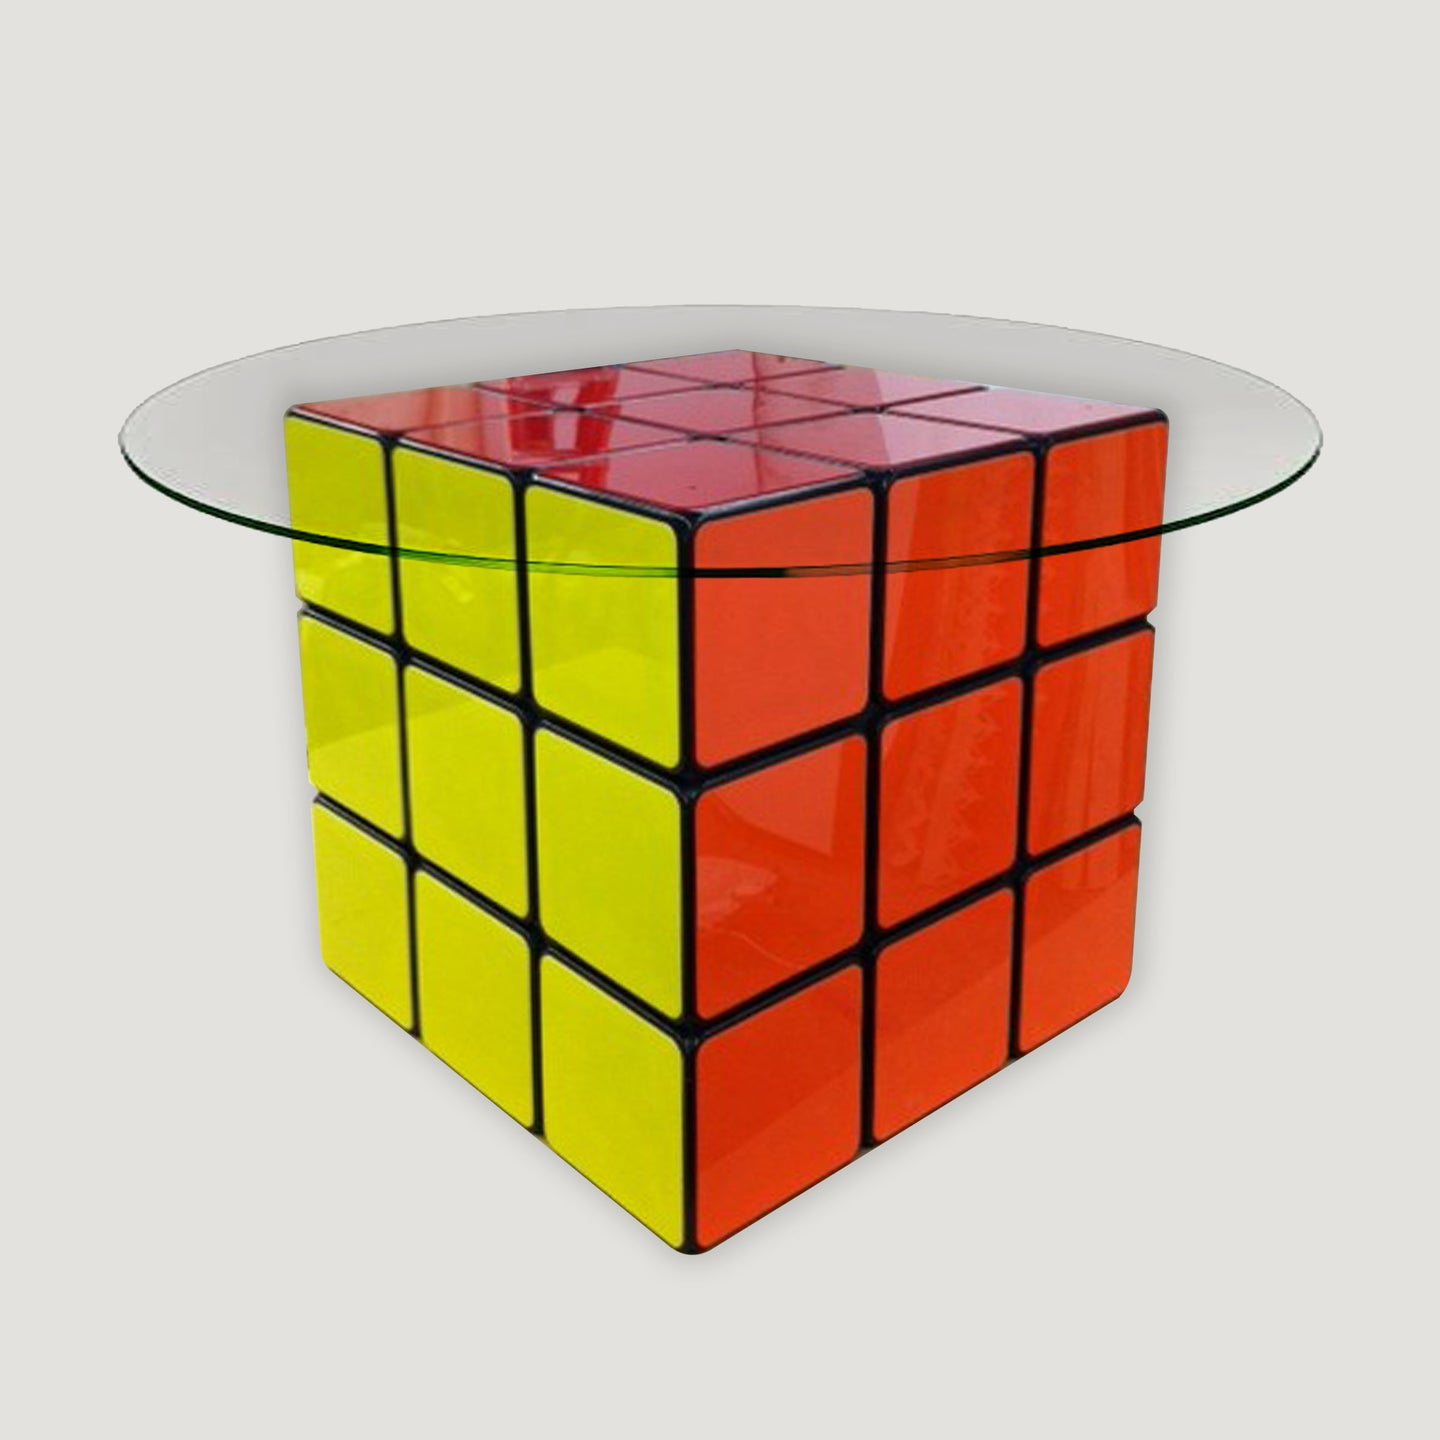 Cube Table 2.0 - Limited Edition